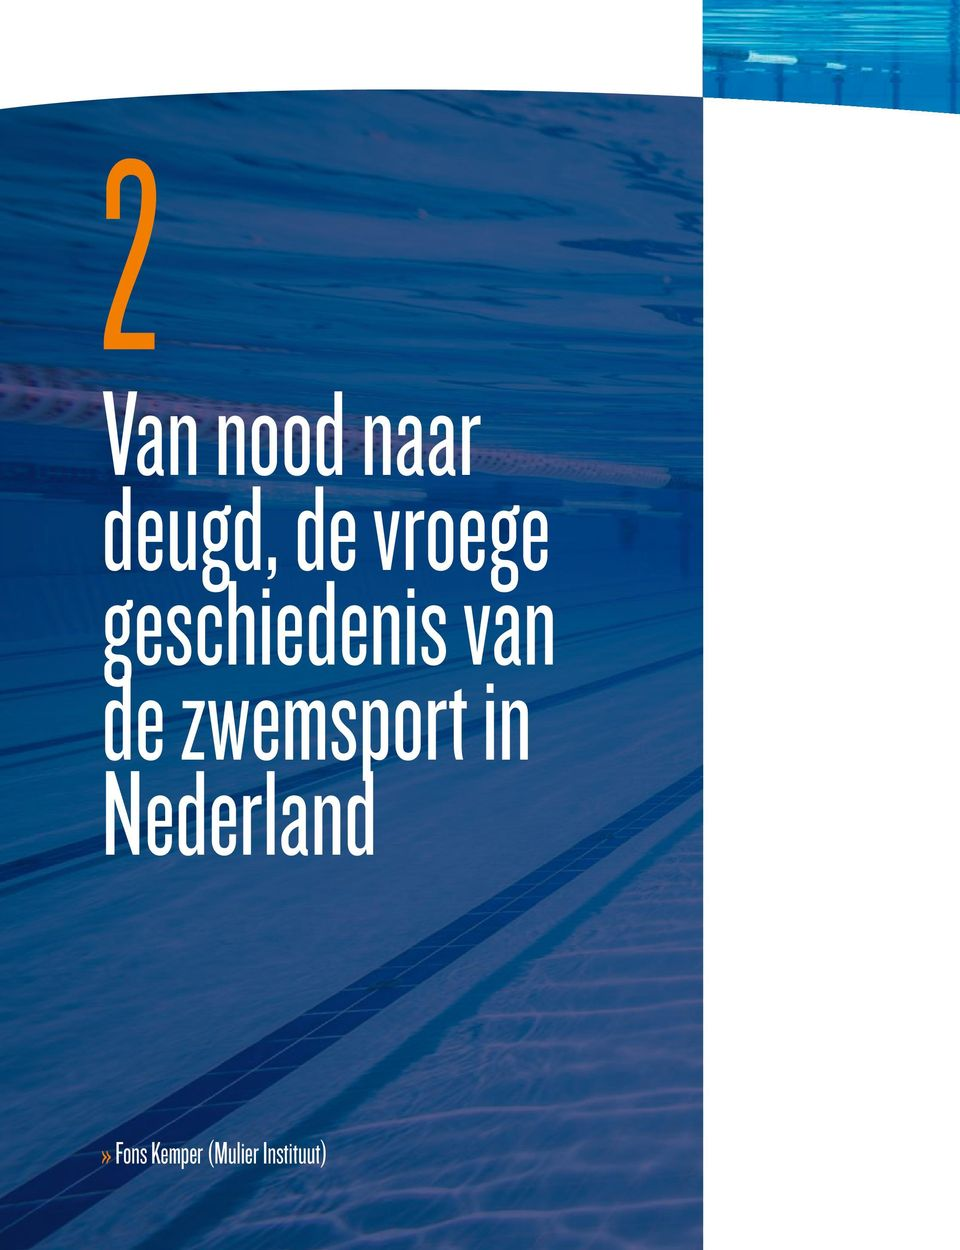 zwemsport in Nederland»